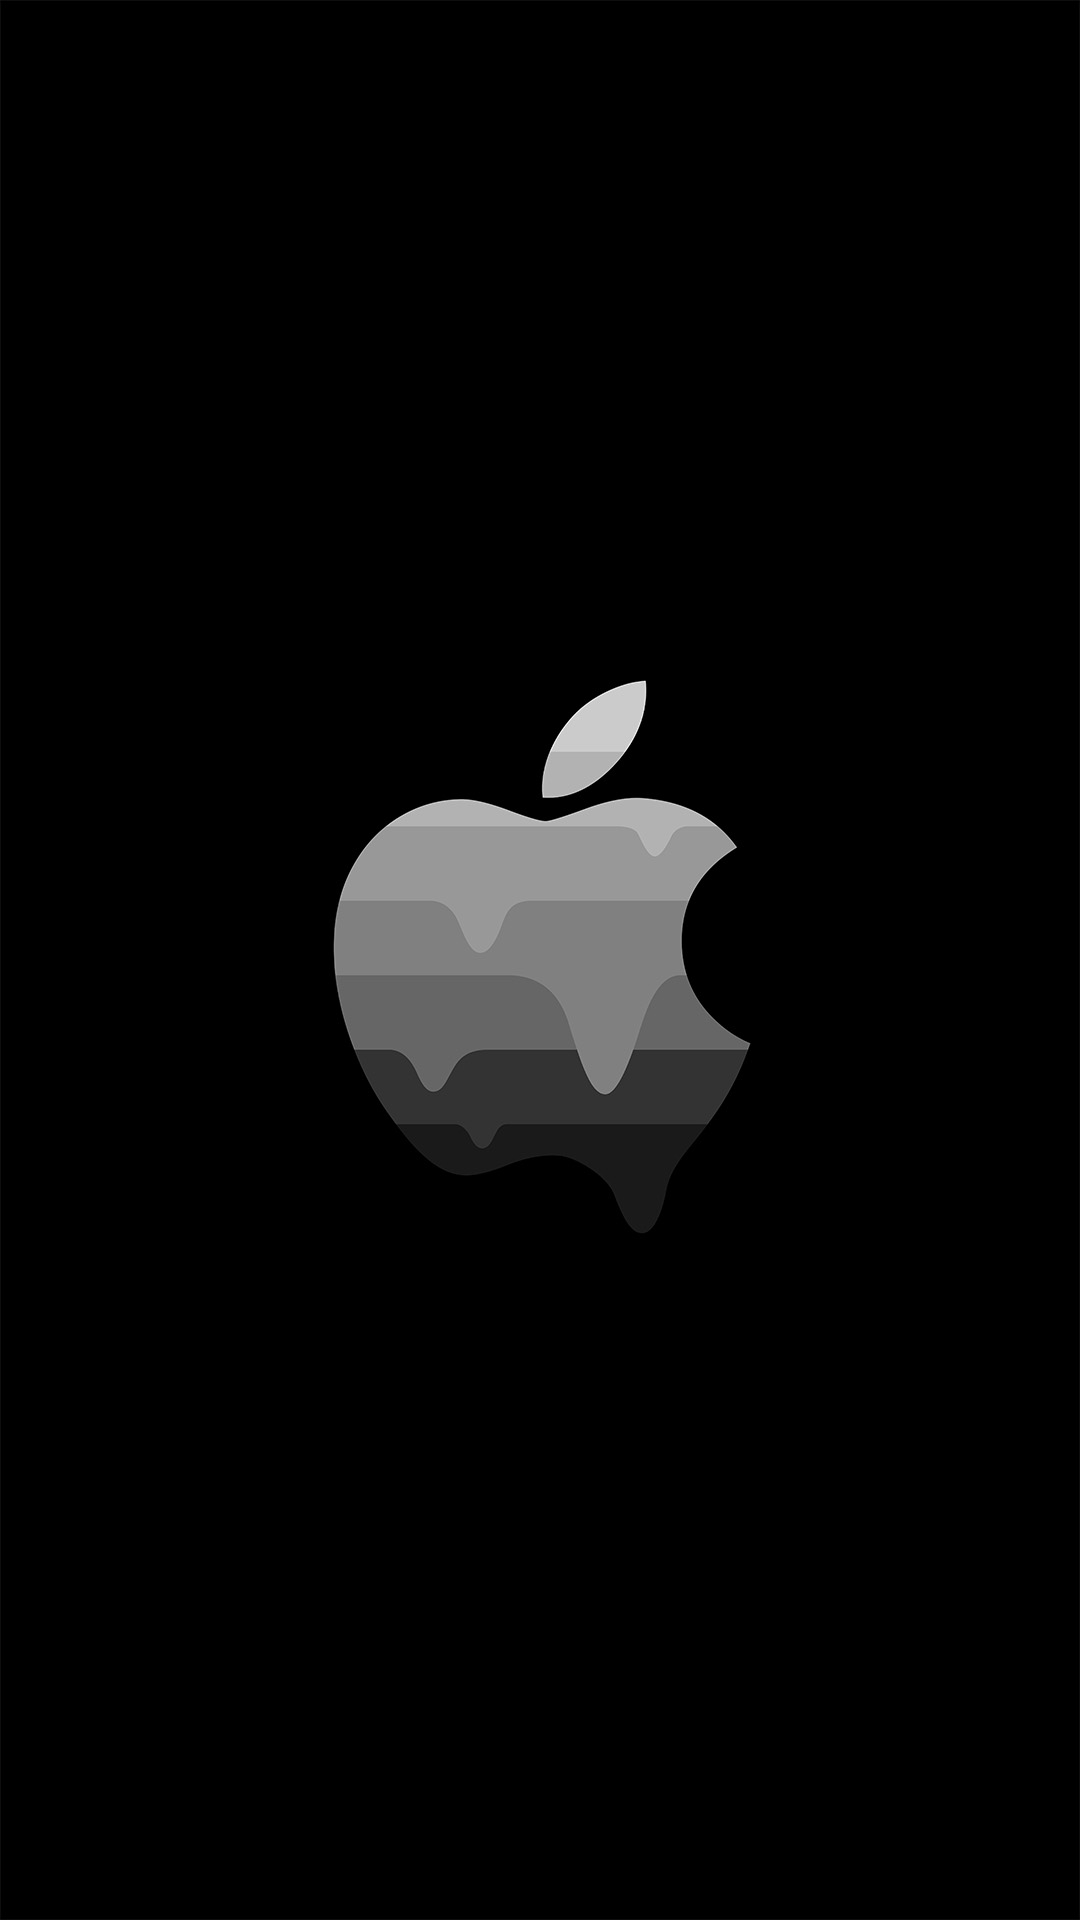 Apple Dark iPhone Wallpaper